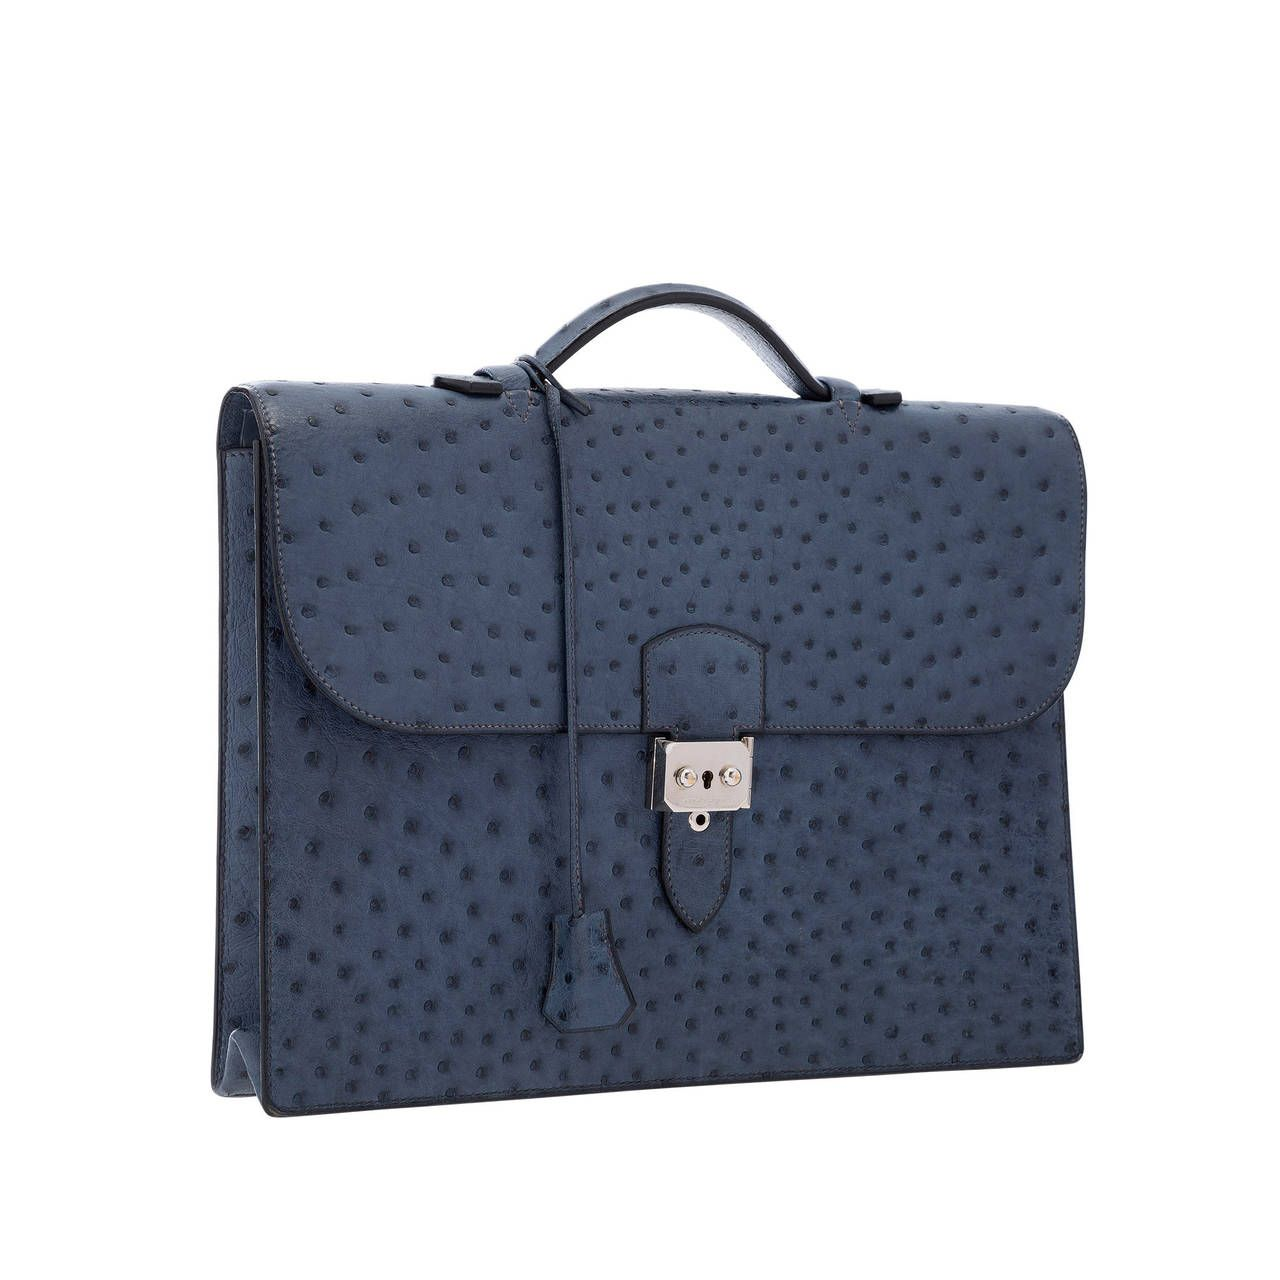 0ad9c6051f5d Hermes Blue Roi Ostrich Sac a Depeches Briefcase Bag with Palladium Hardware